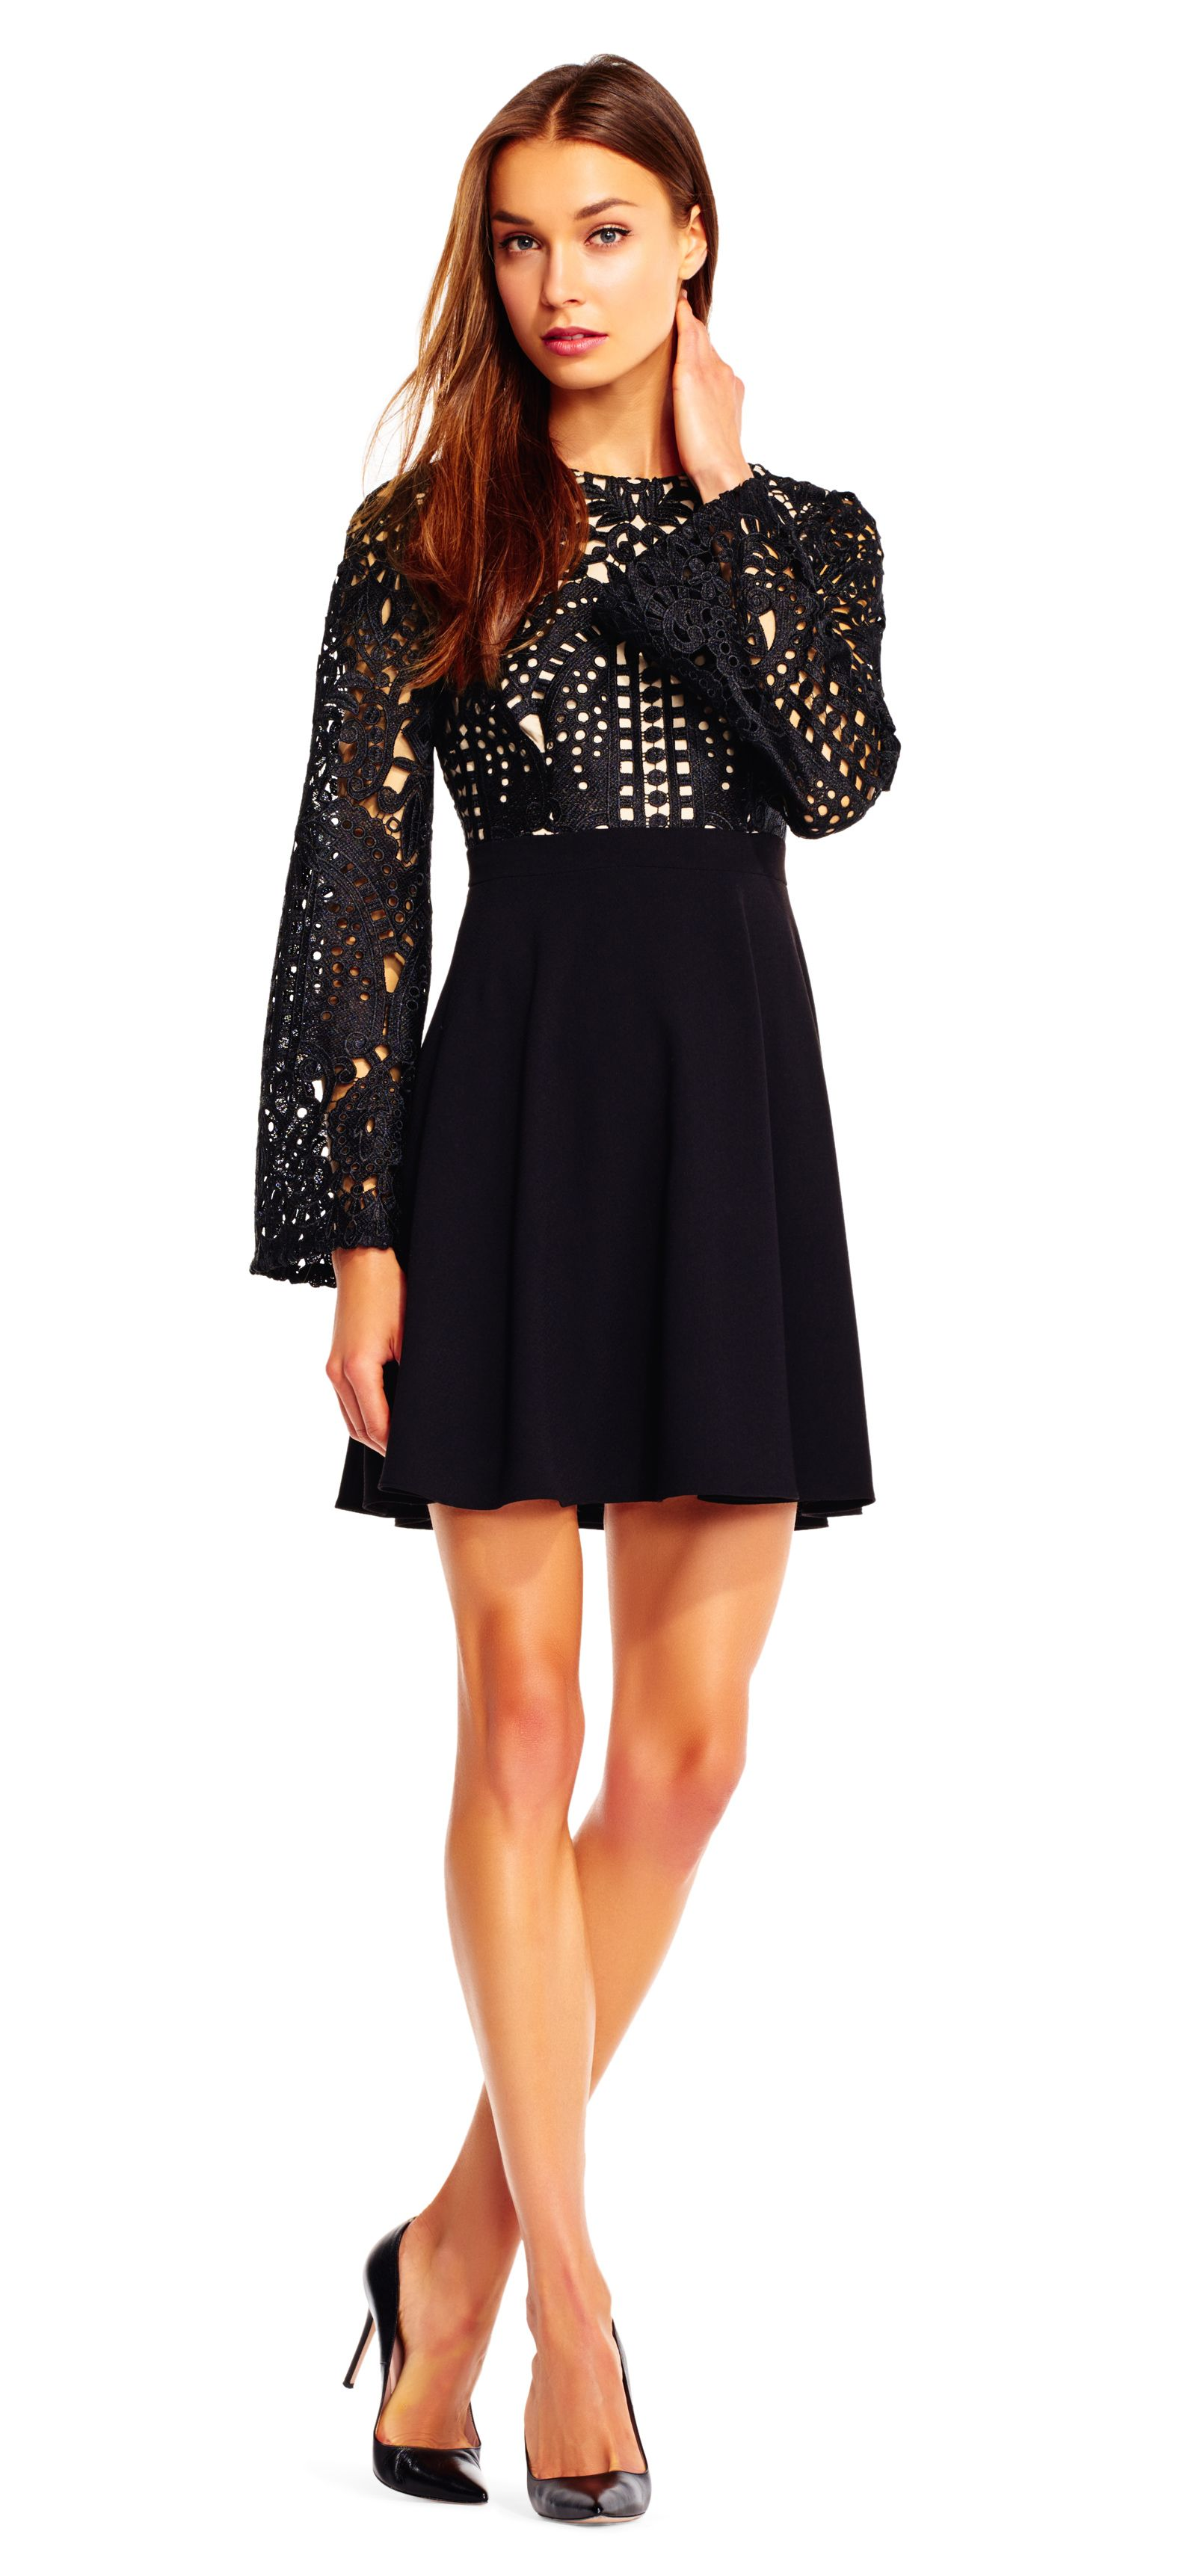 Long sleeve aline dress with embroidered lace bodice